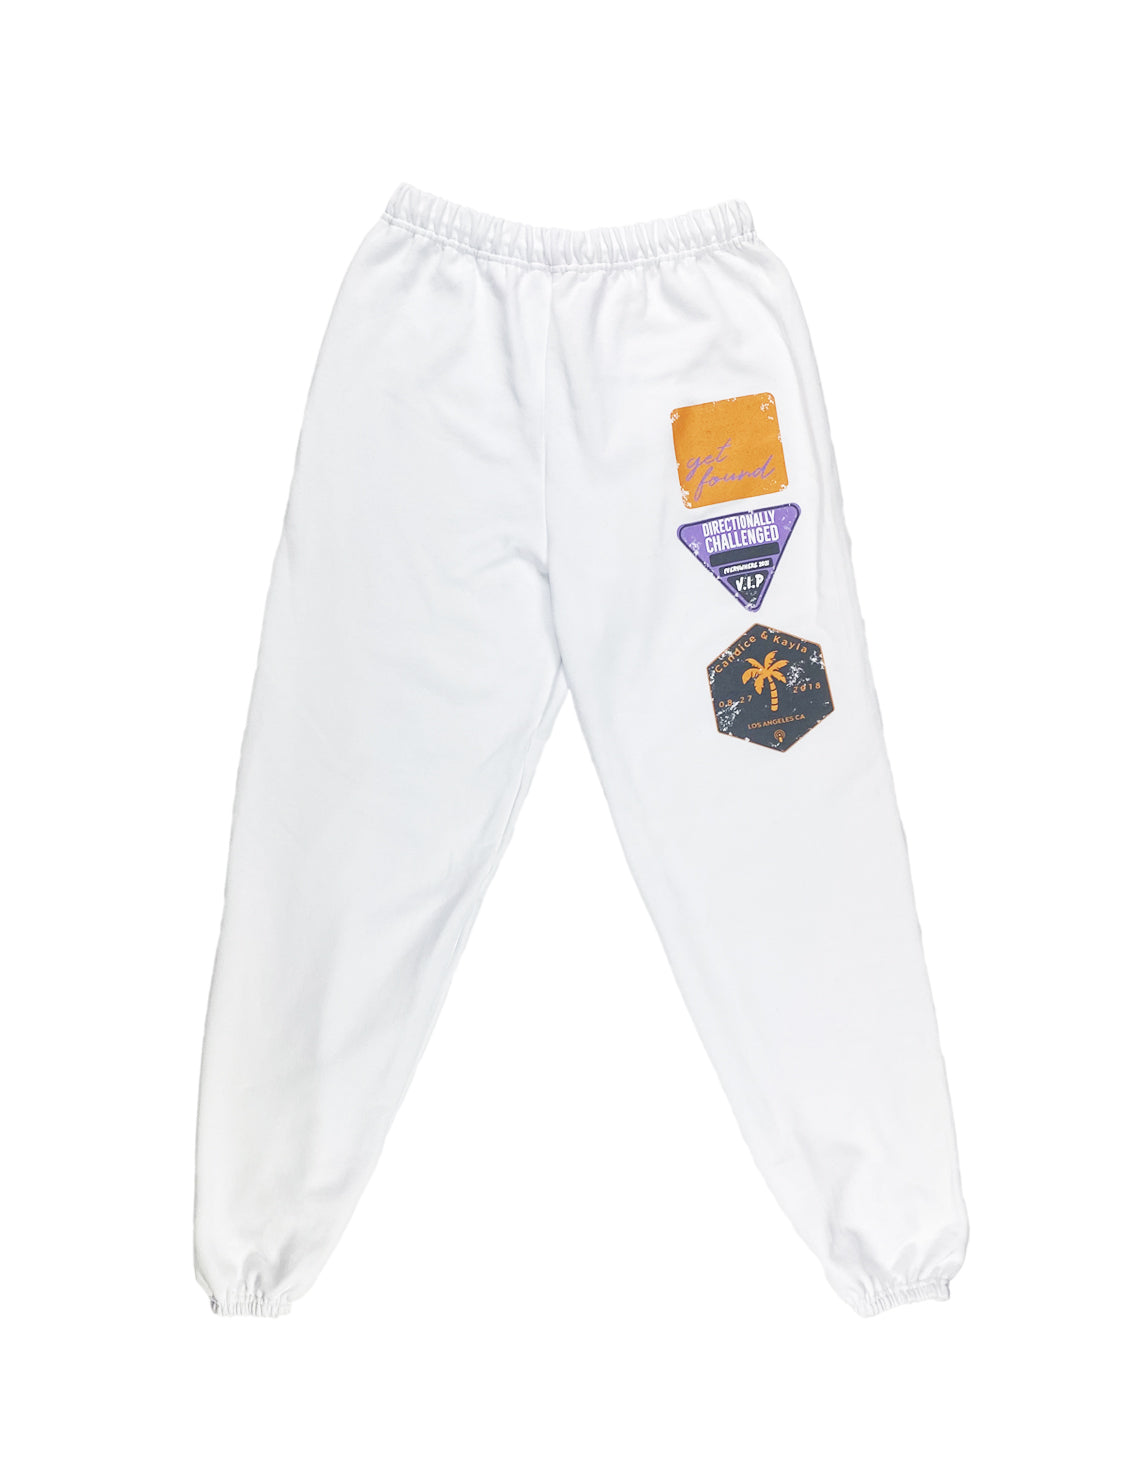 DIRECTIONALLY CHALLENGED TRAVEL SWEAT PANT